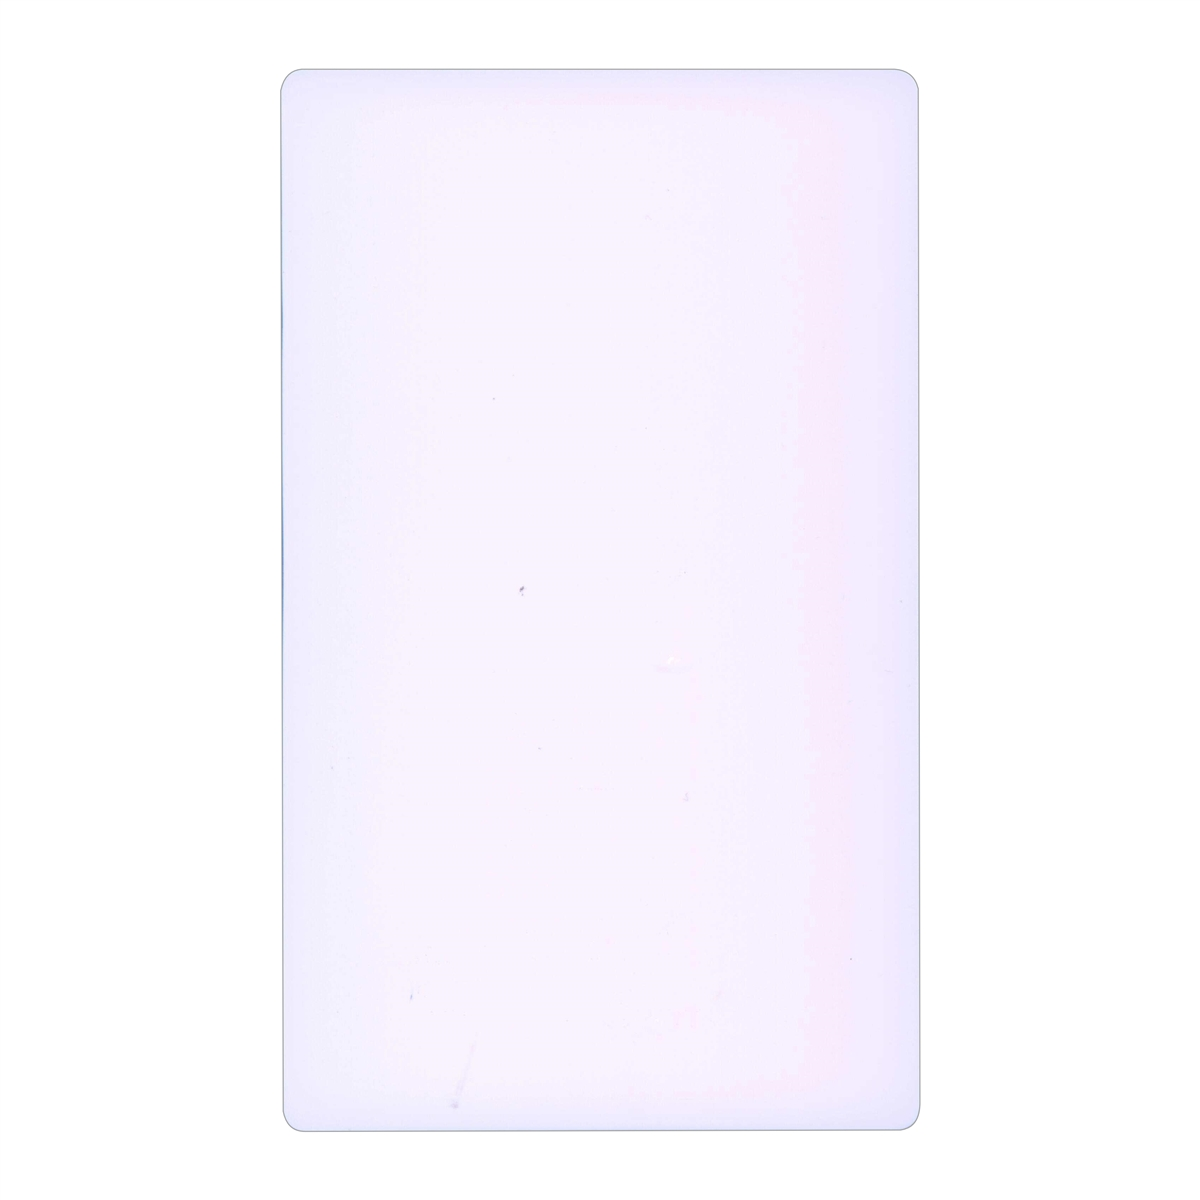 blank plastic make your own index pocket card - Blank Plastic Cards